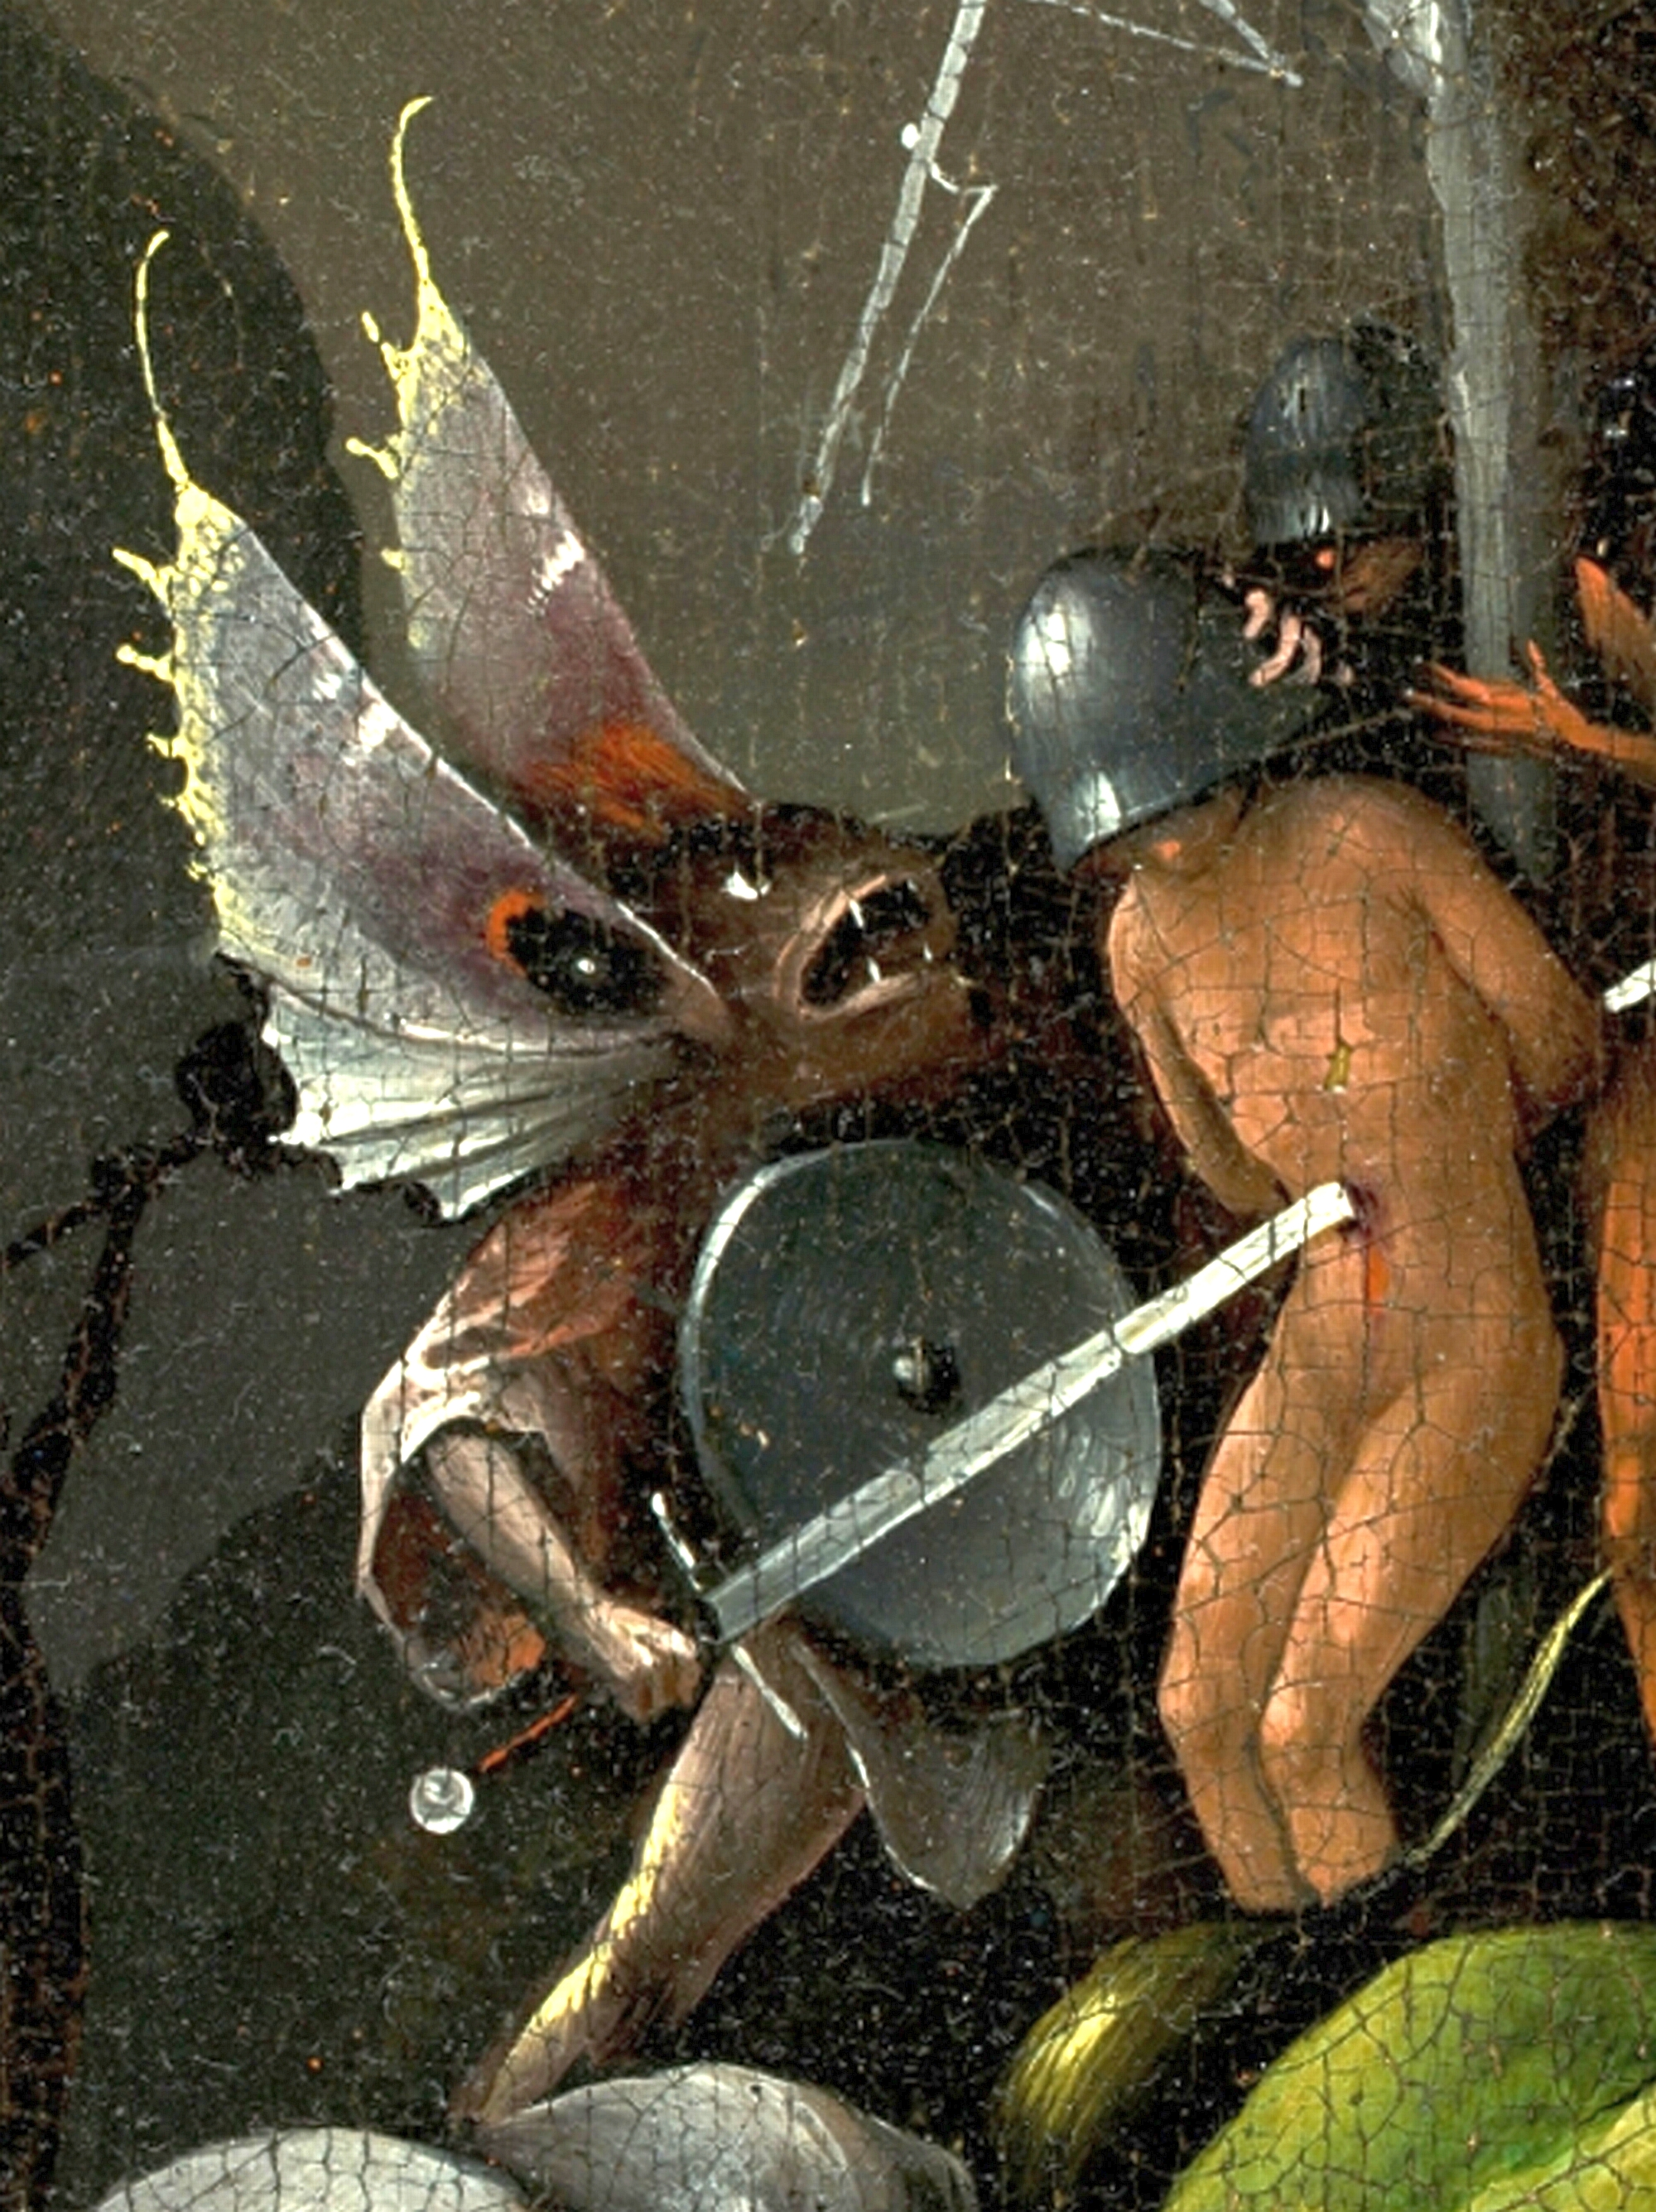 Hieronymus bosch on pinterest the last judgment - Hieronymus bosch garden of earthly delights ...